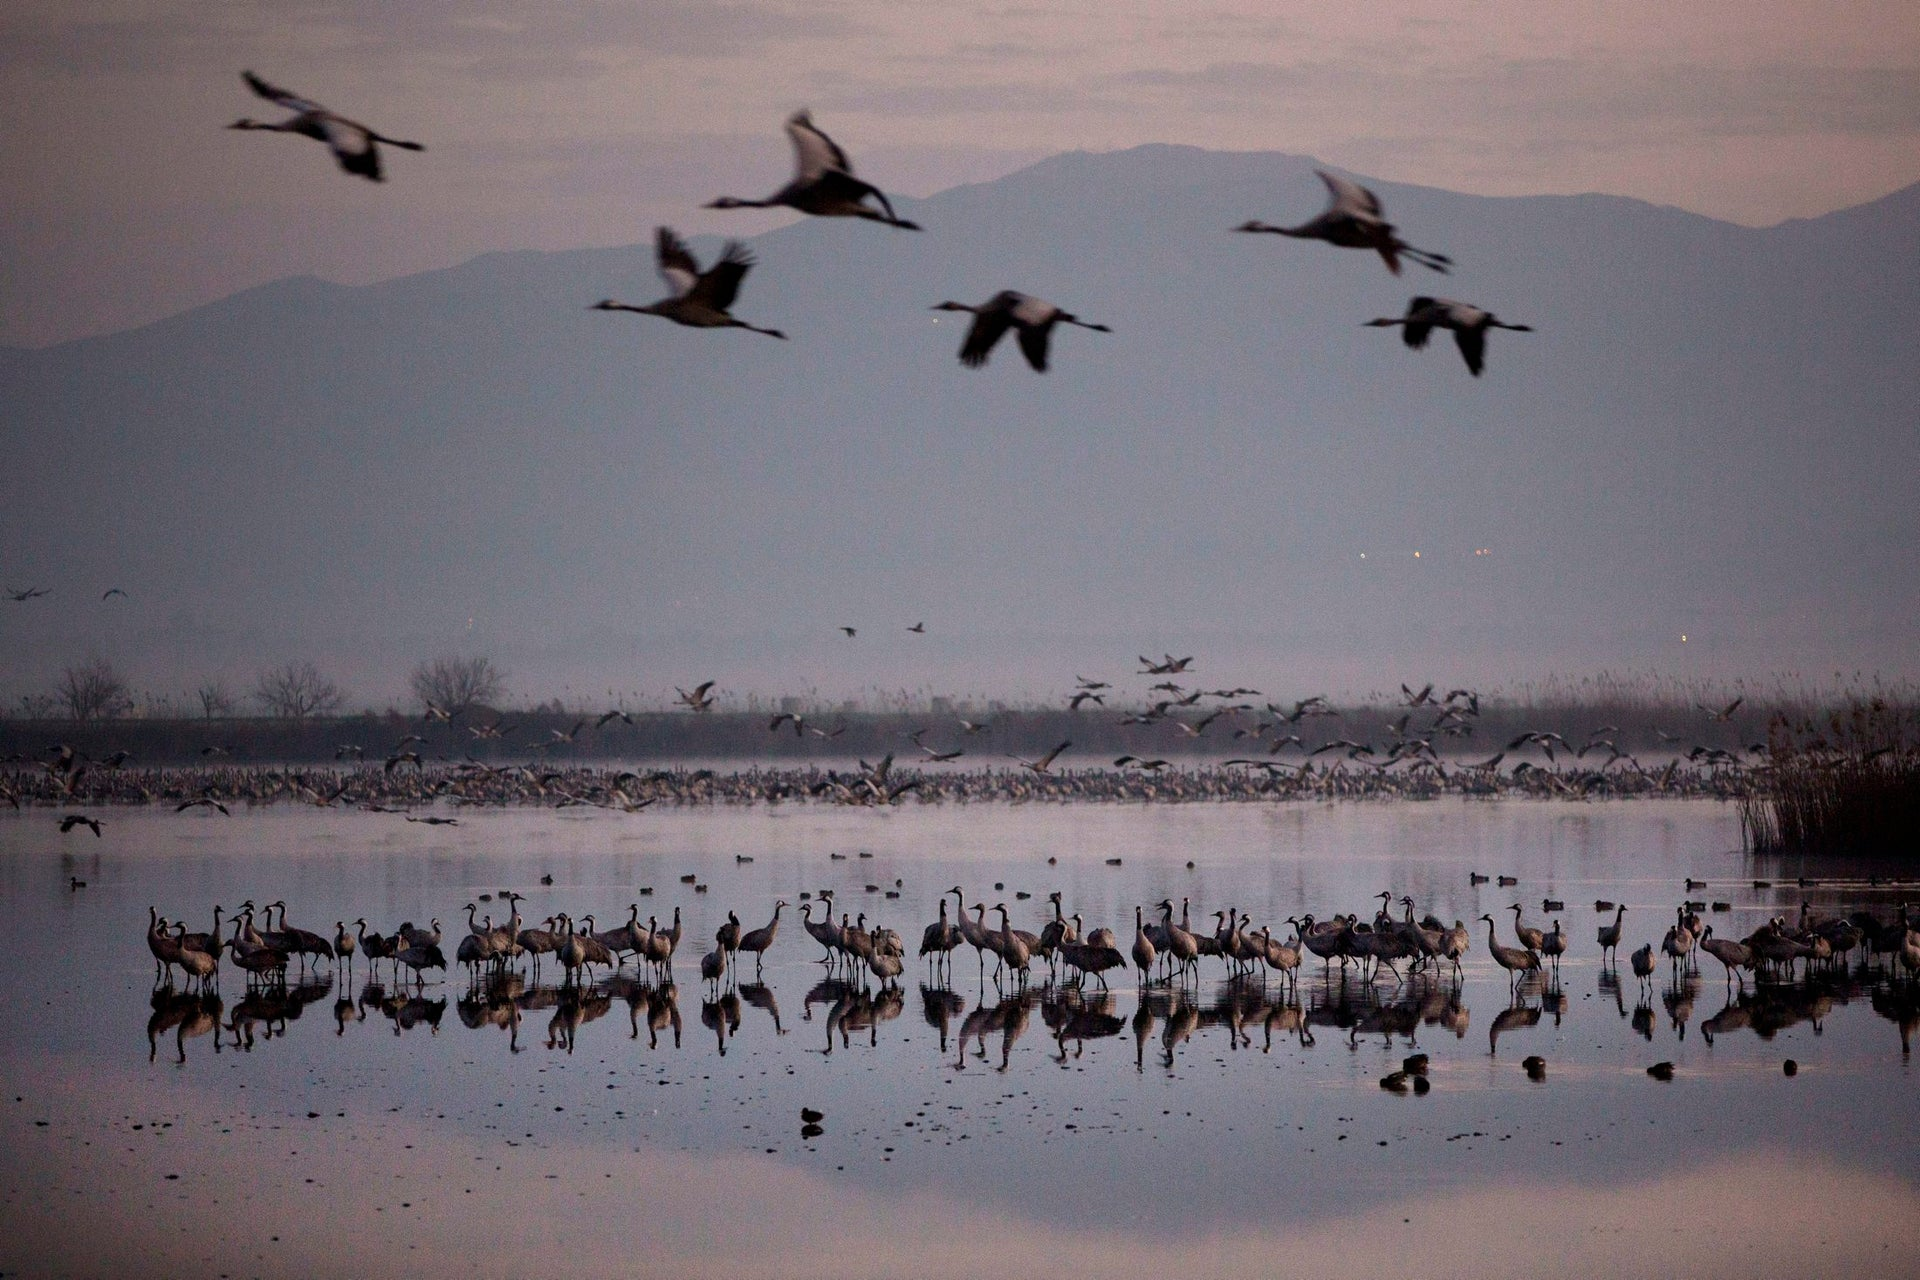 Migrating cranes flocking at the Hula Lake conservation area, north of the Sea of Galilee, in northern Israel, February 14, 2016.